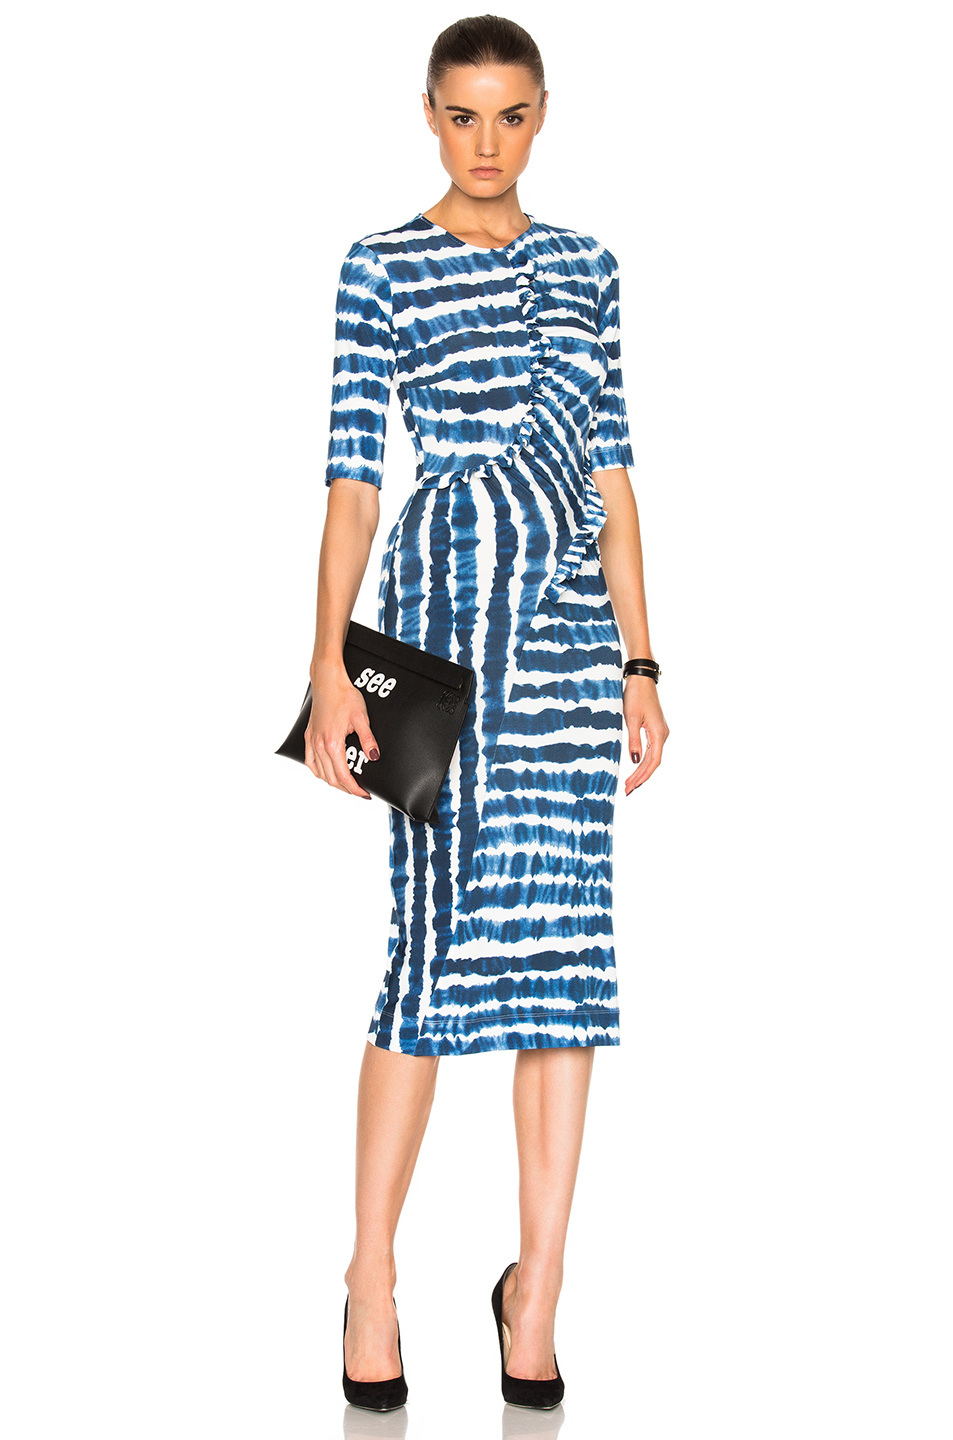 Preen by Thornton Bregazzi Marlena Dress in Blue,Ombre & Tie Dye,White